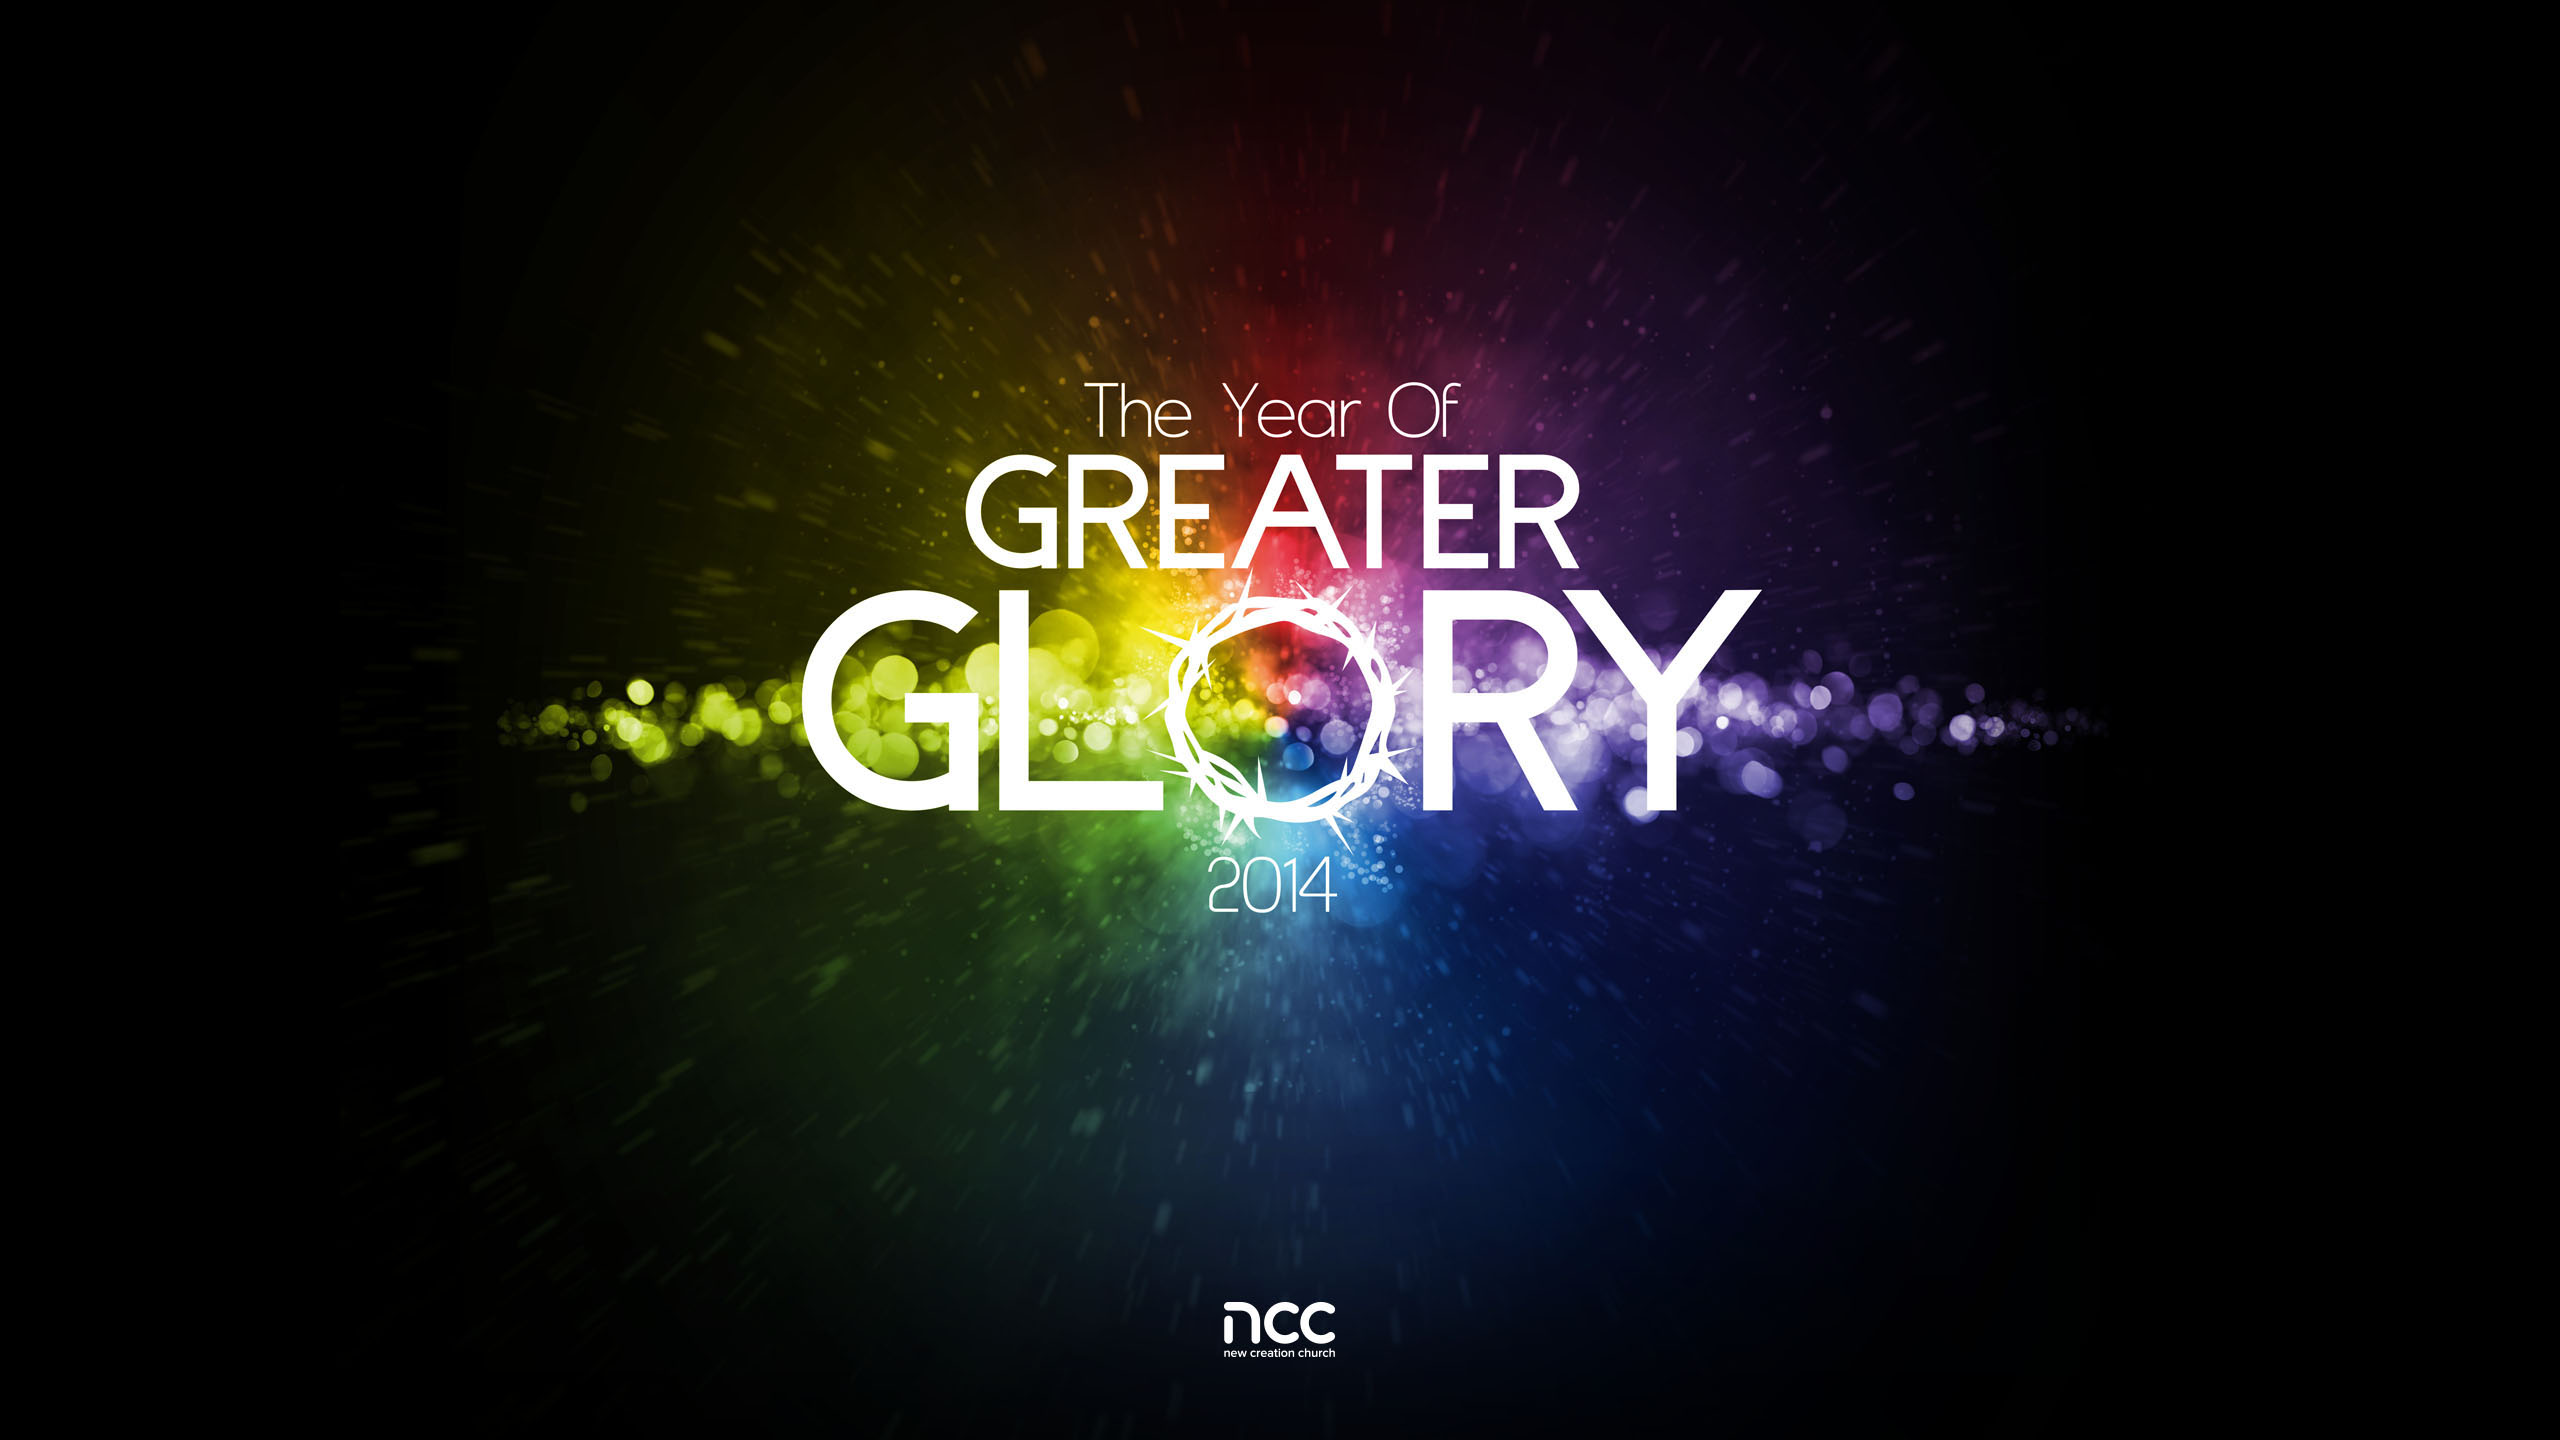 All Glory And All Praise Lyrics and Chords